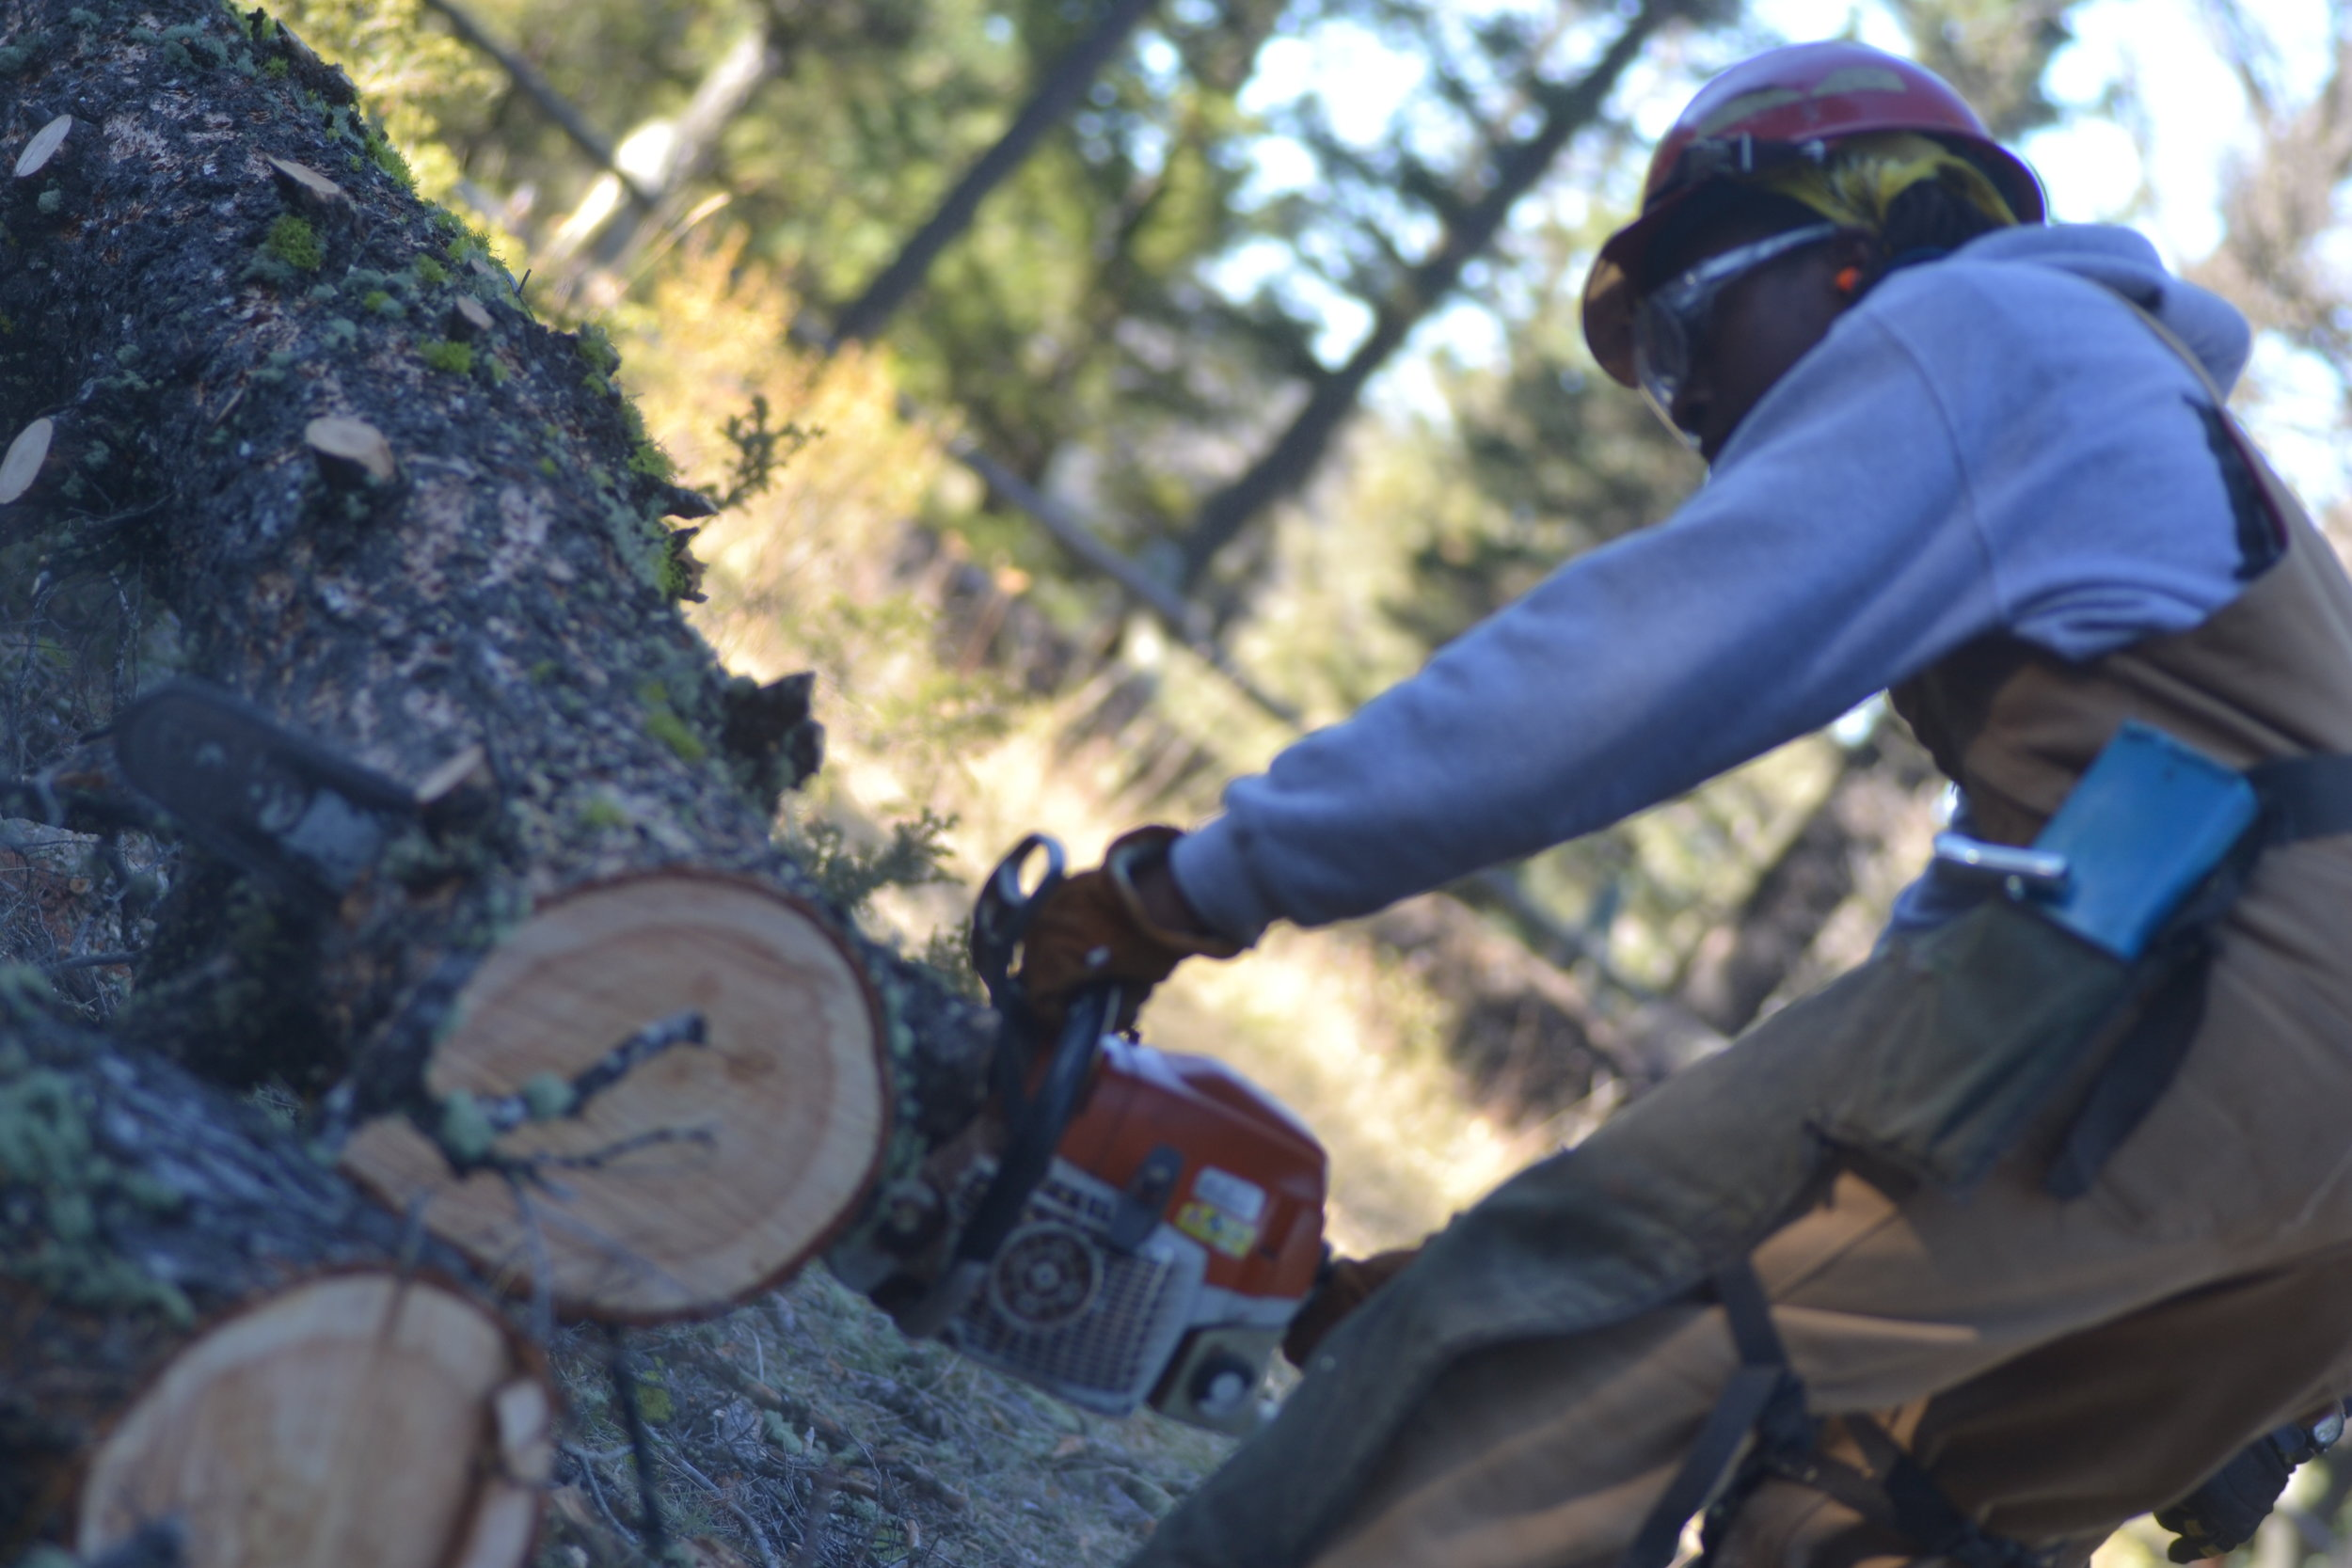 Year 24 member, Matthew Norman, bucks up a downed tree in Montana, 2017